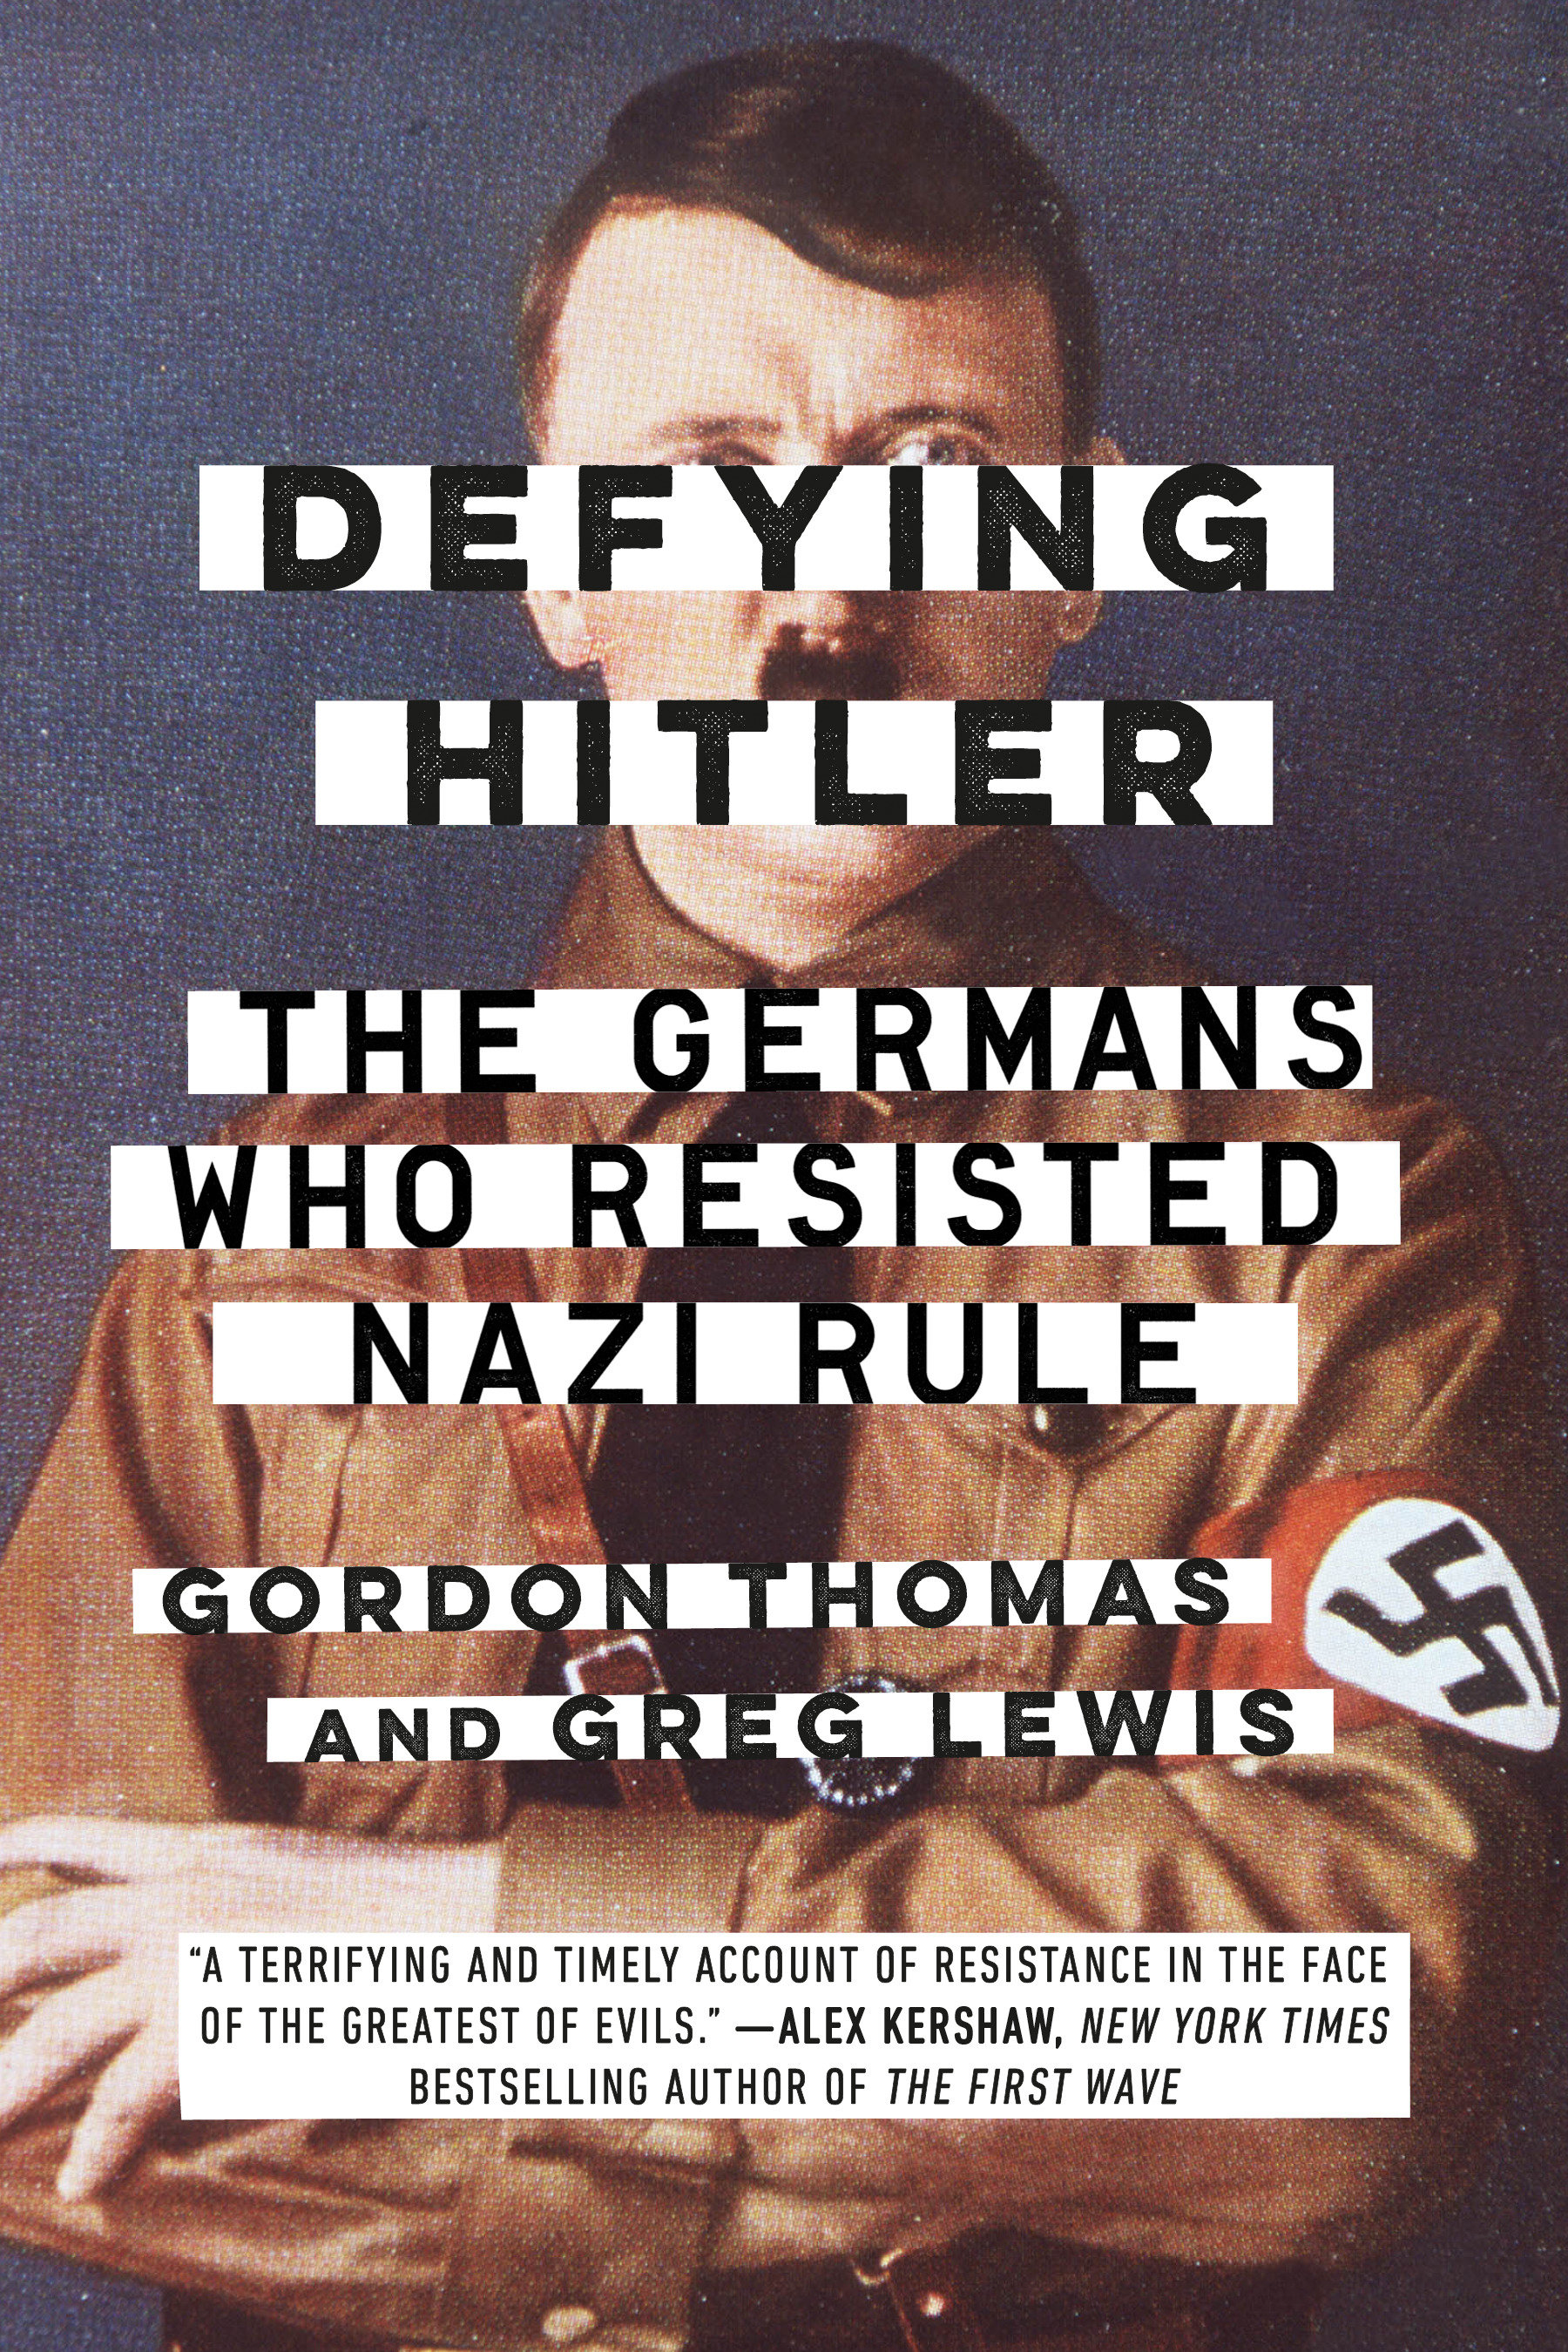 Defying Hitler the Germans who resisted Nazi rule cover image